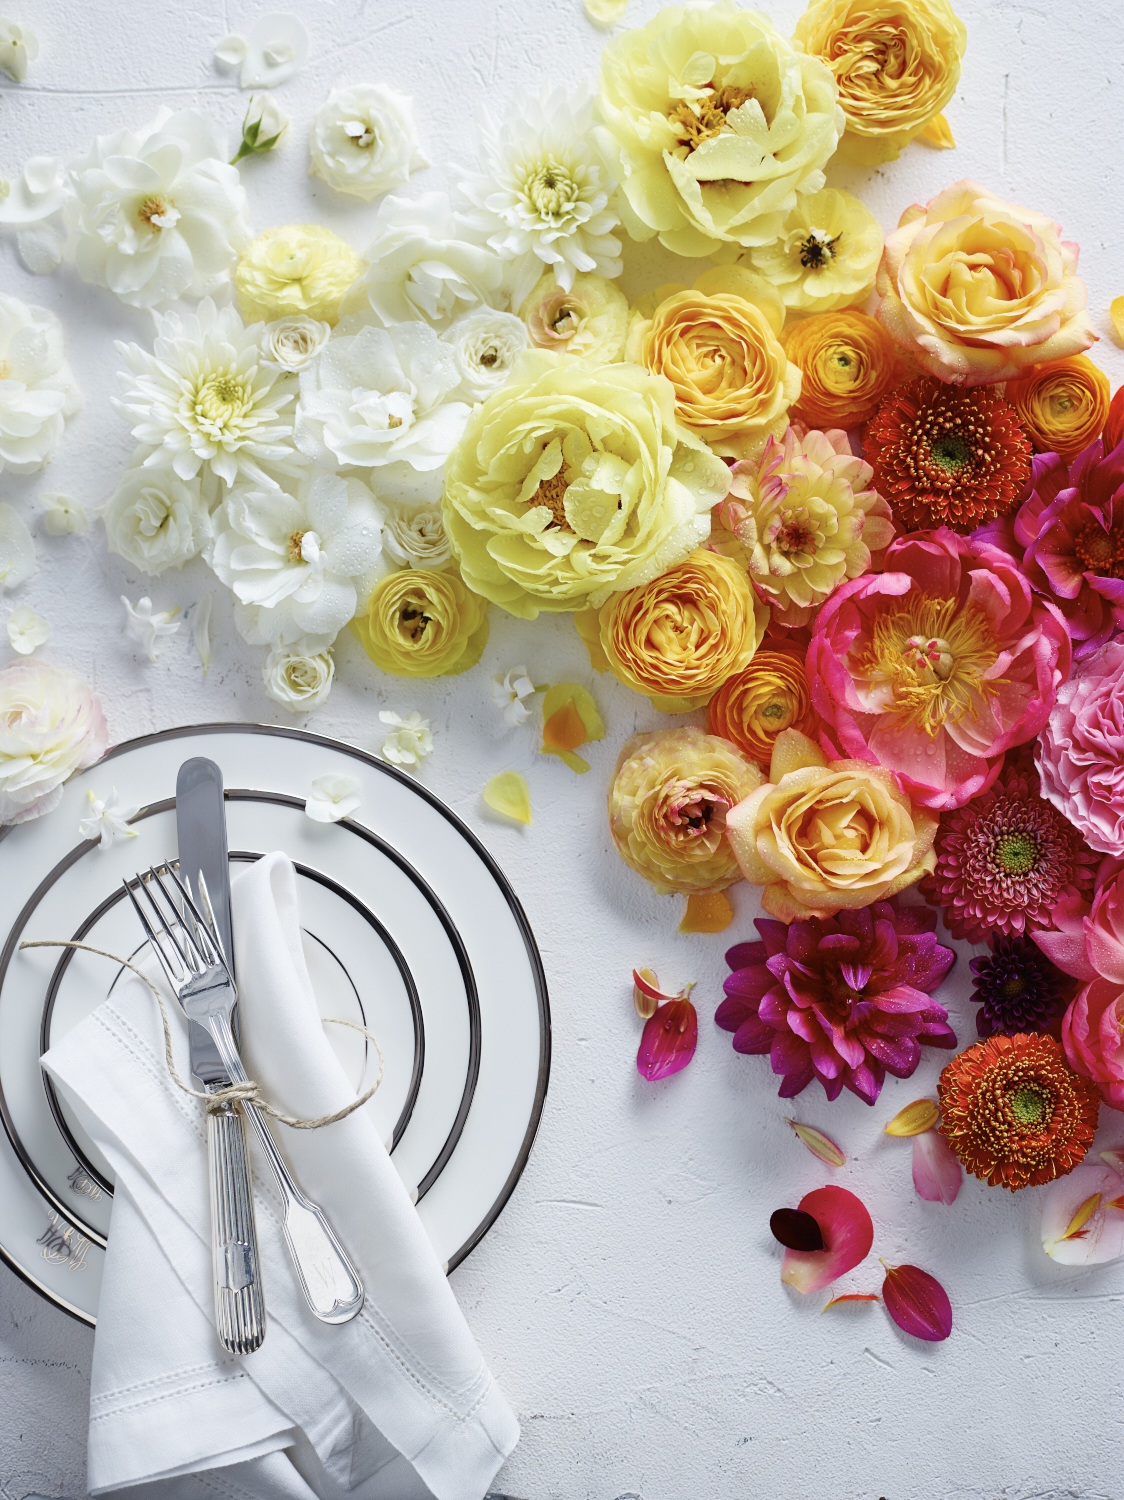 Williams Sonoma Wedding Registry.Williams Sonoma Inc Launches The One Registry Collective